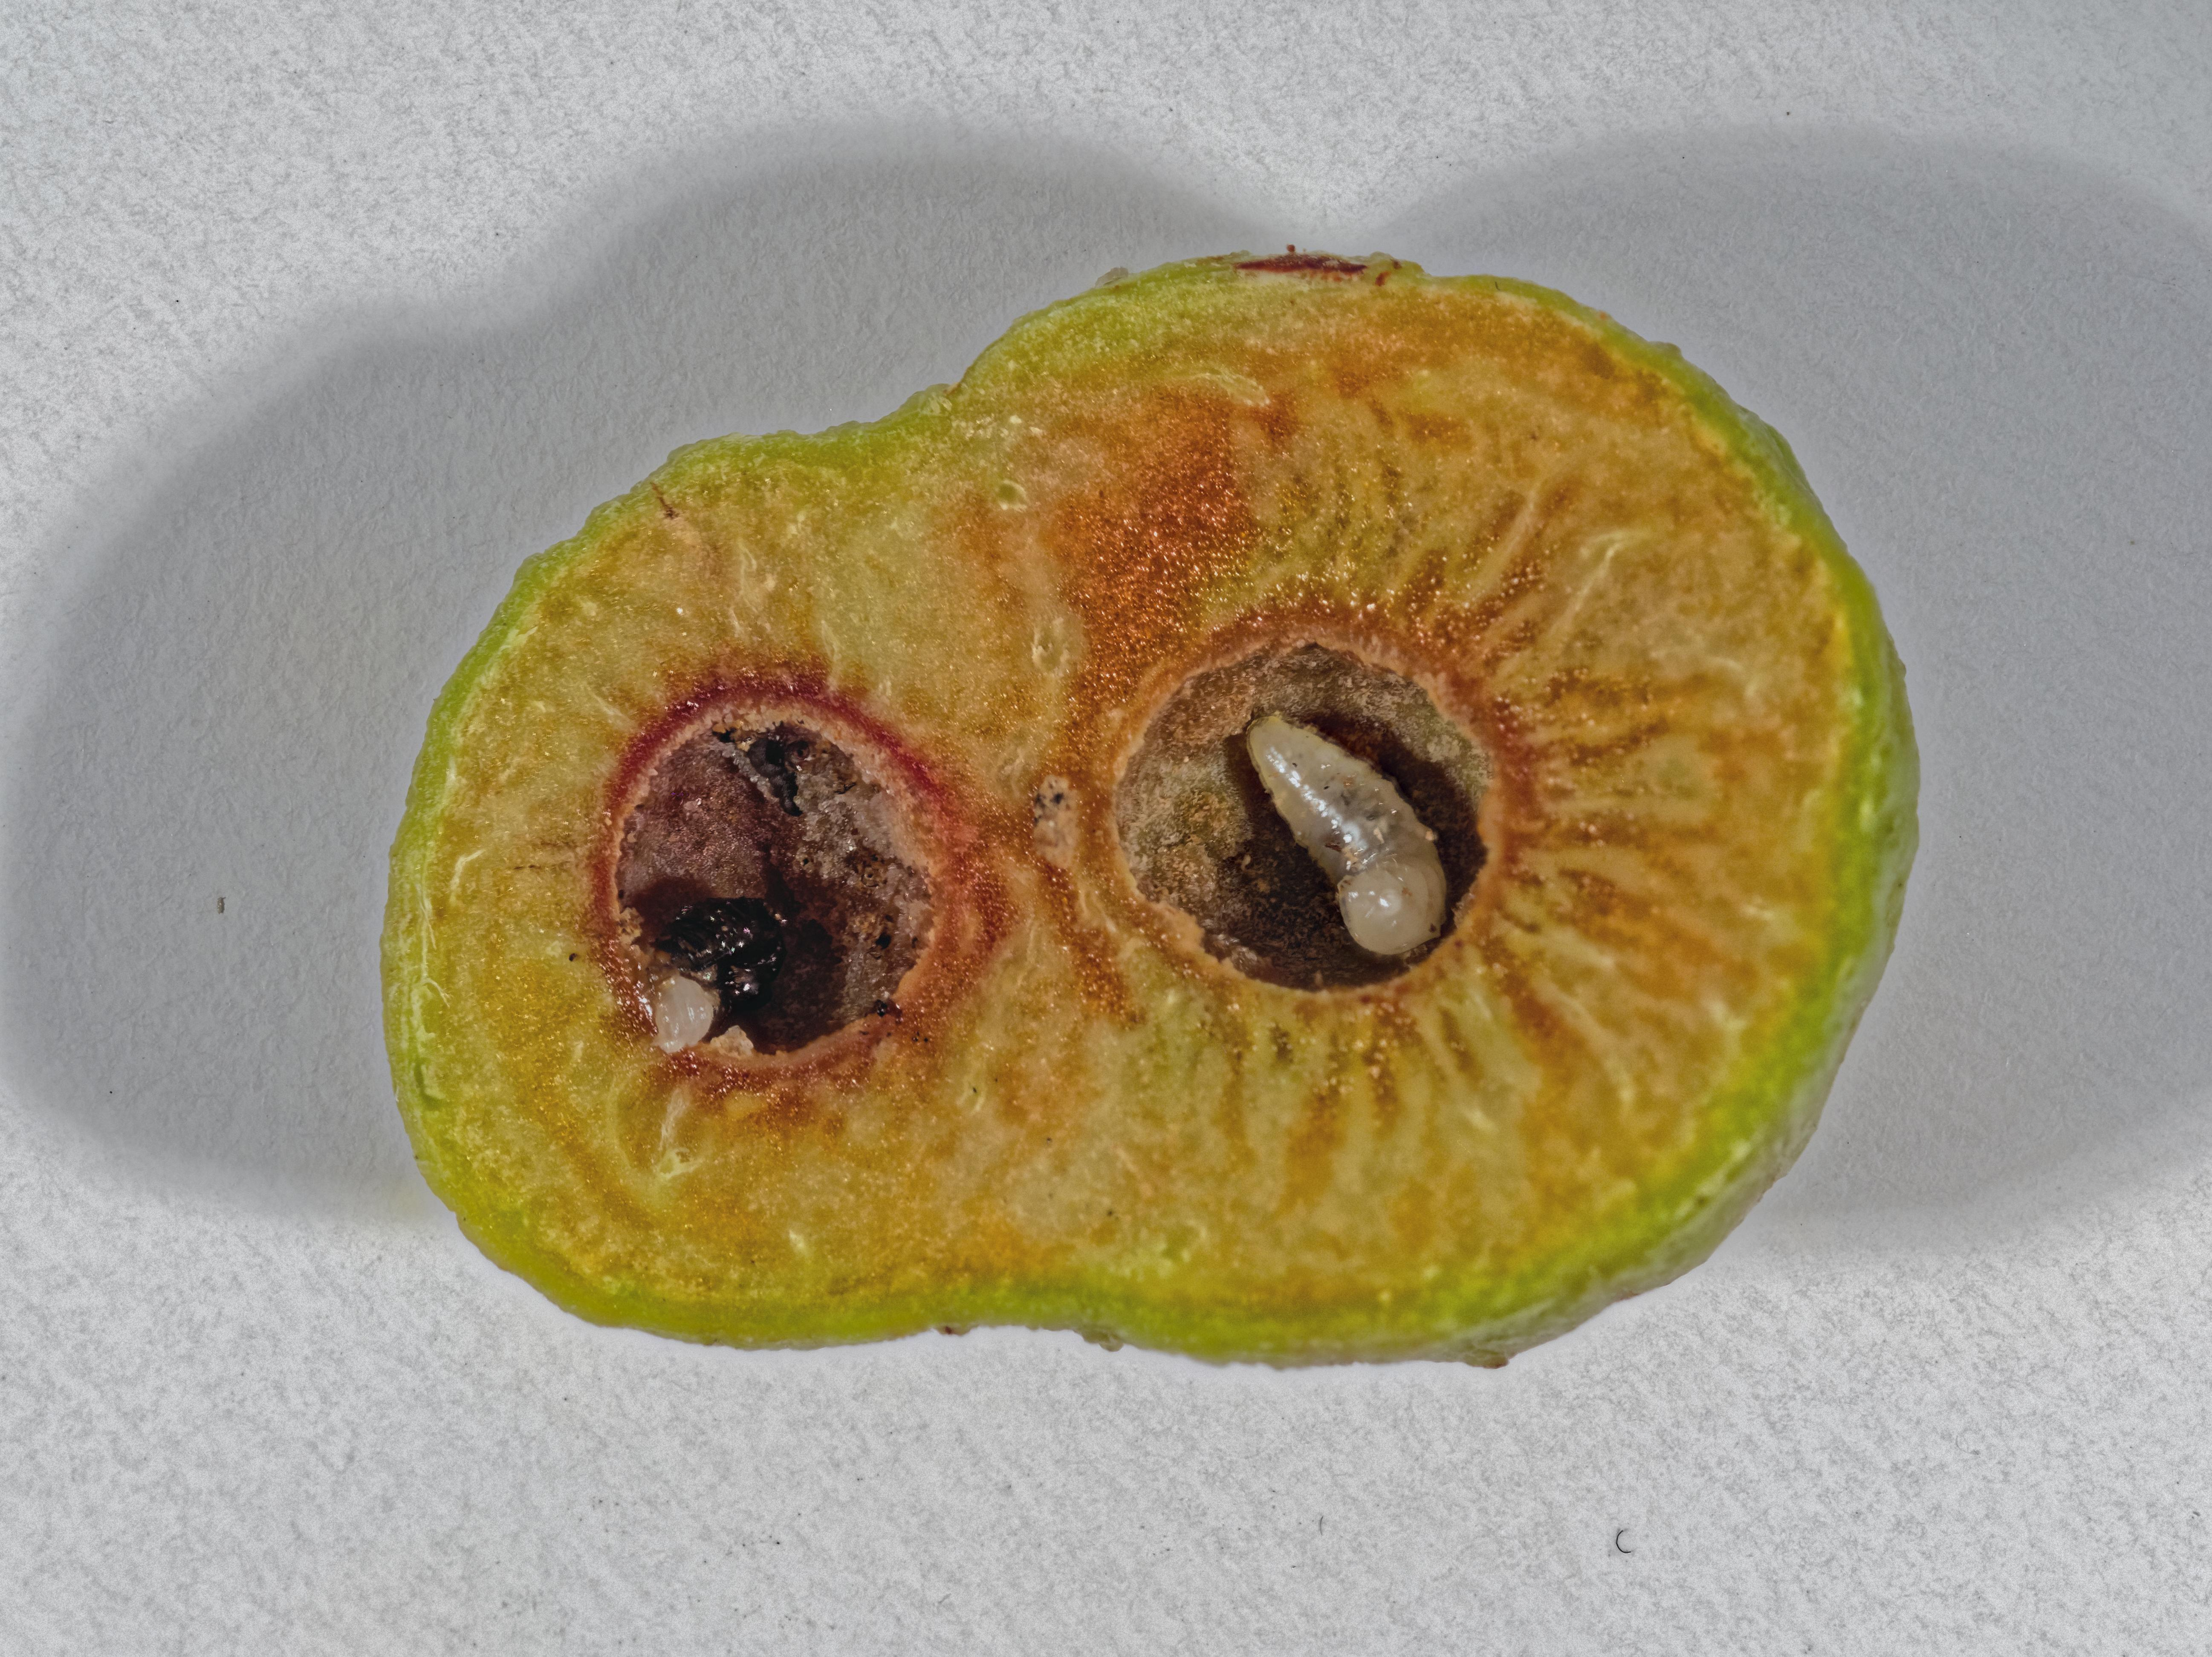 This should be Acacia-gall-1-PMax.jpeg.  Is it missing?